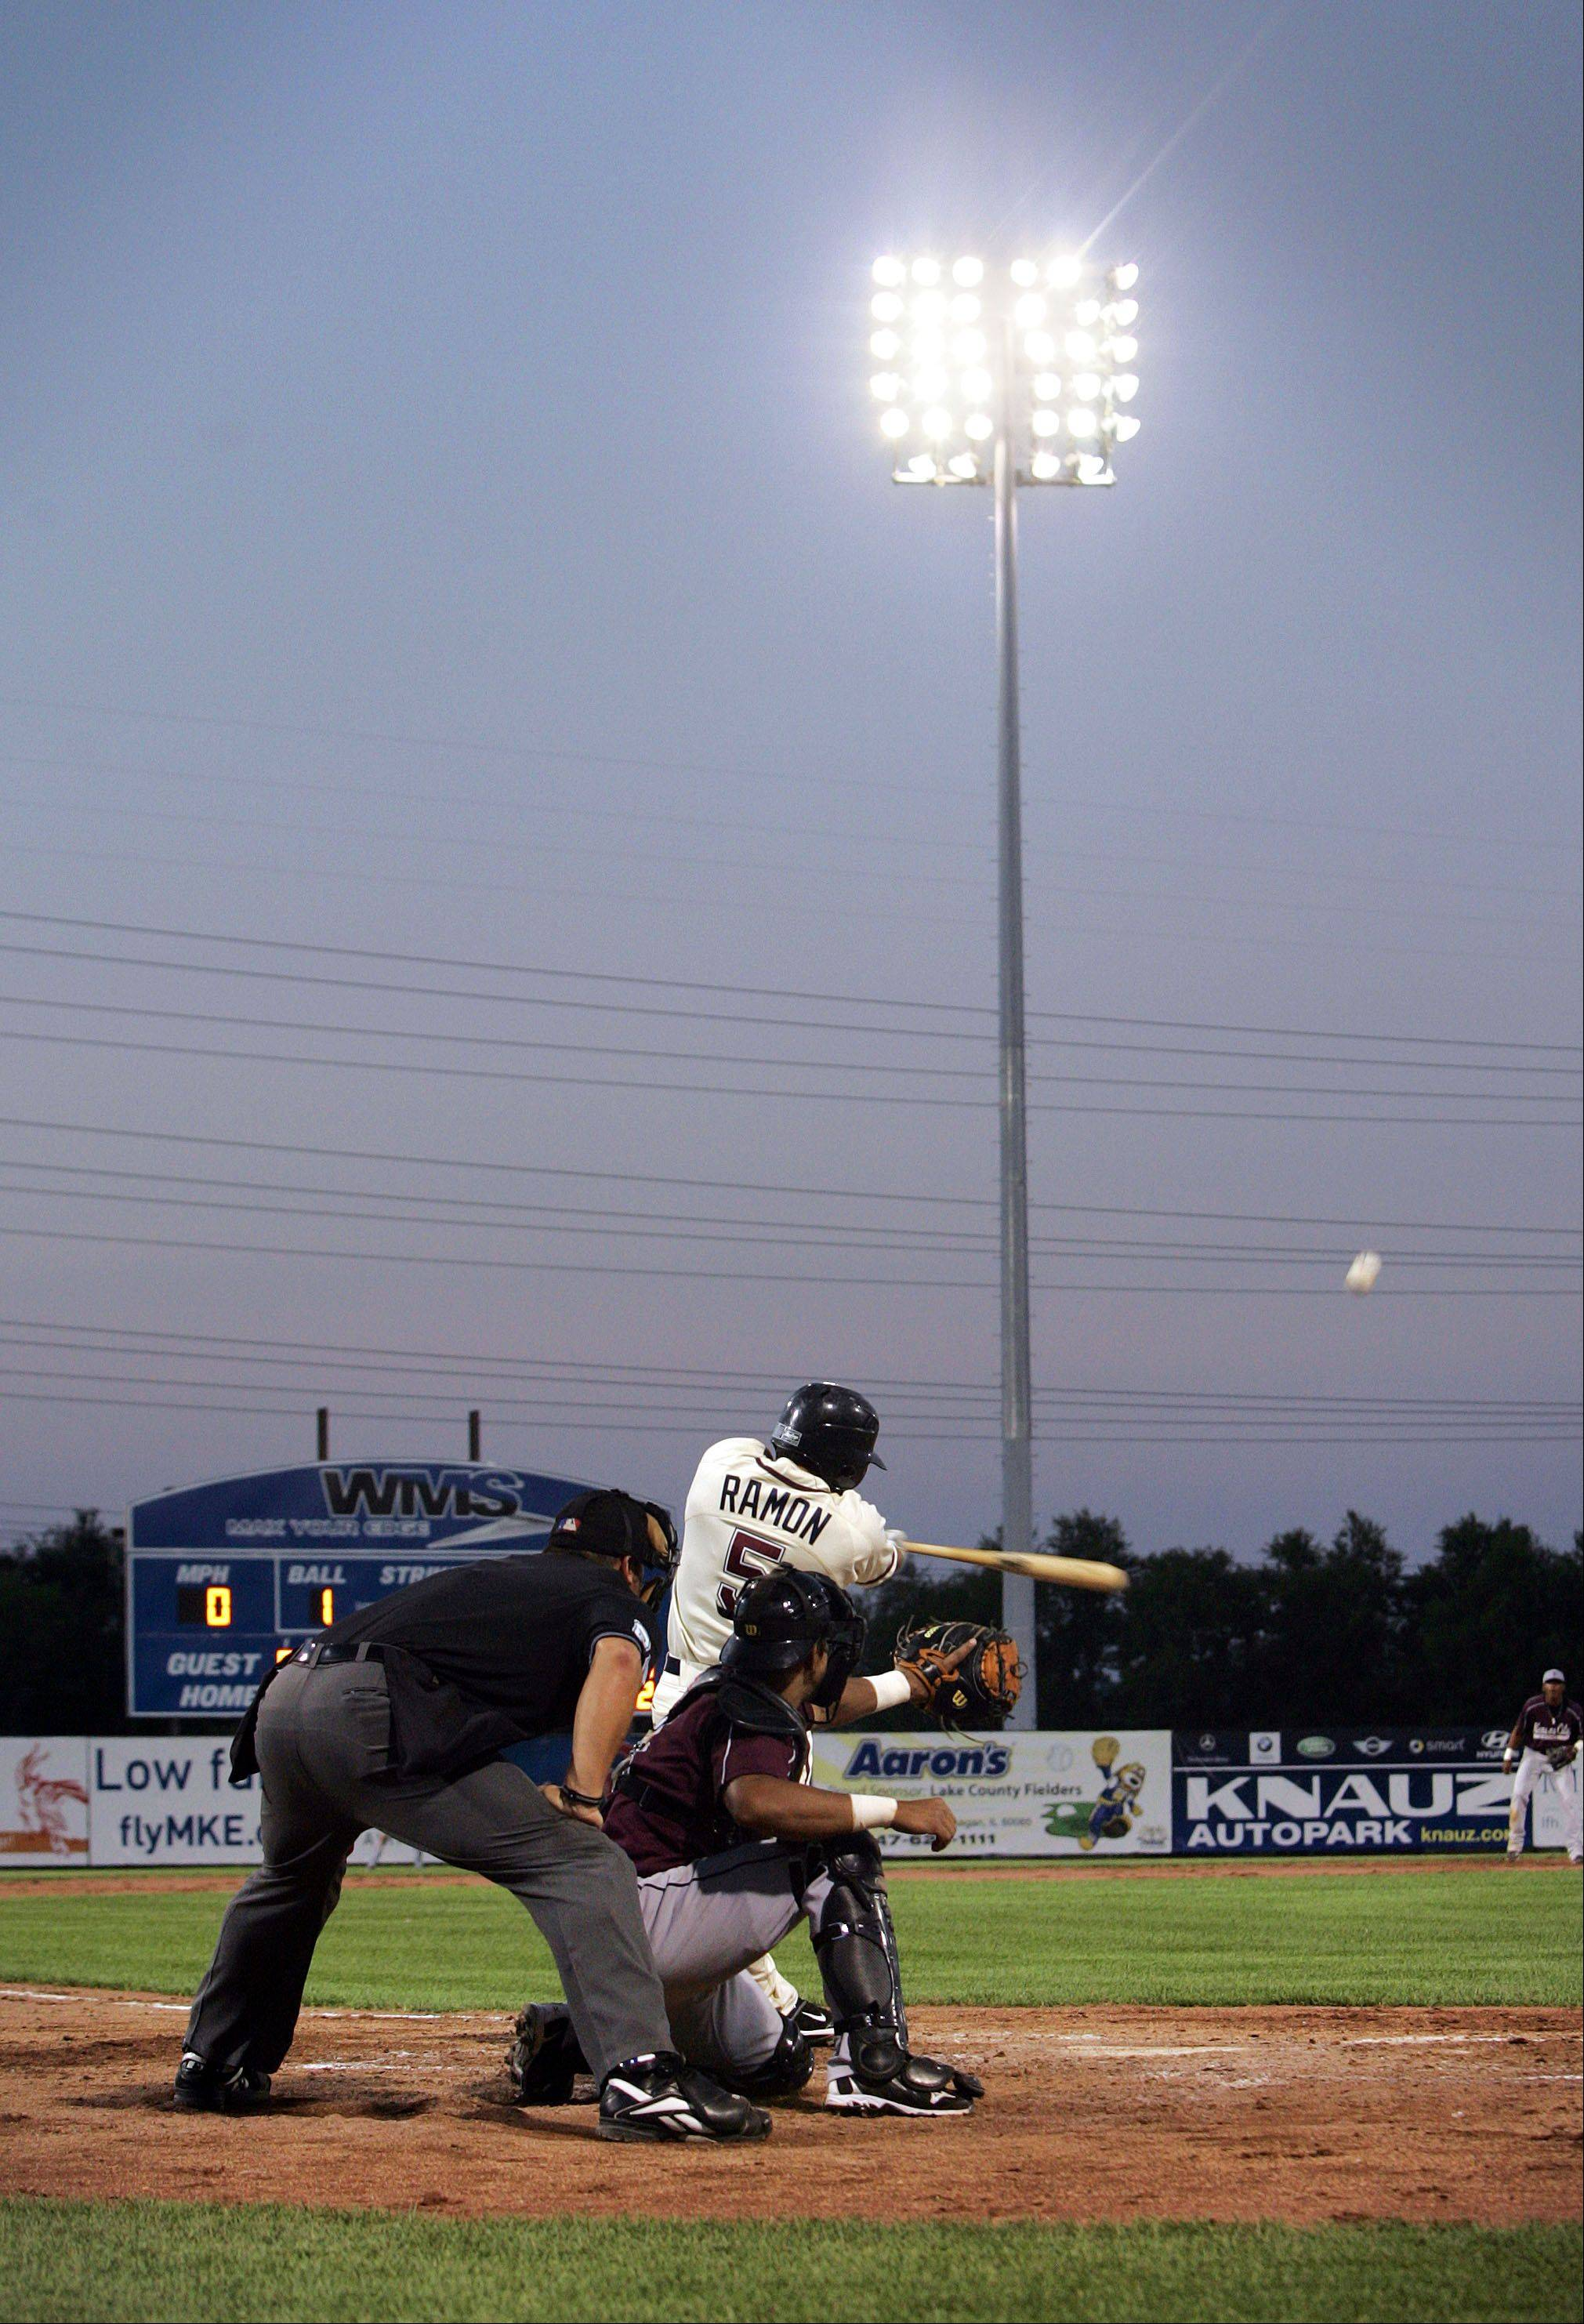 Amos Ramon connects with the ball as the Lake County Fielders played the Kansas City T-bones in the first night game at a Zion diamond in the 2010. Last year was the Fielders' inaugural season.